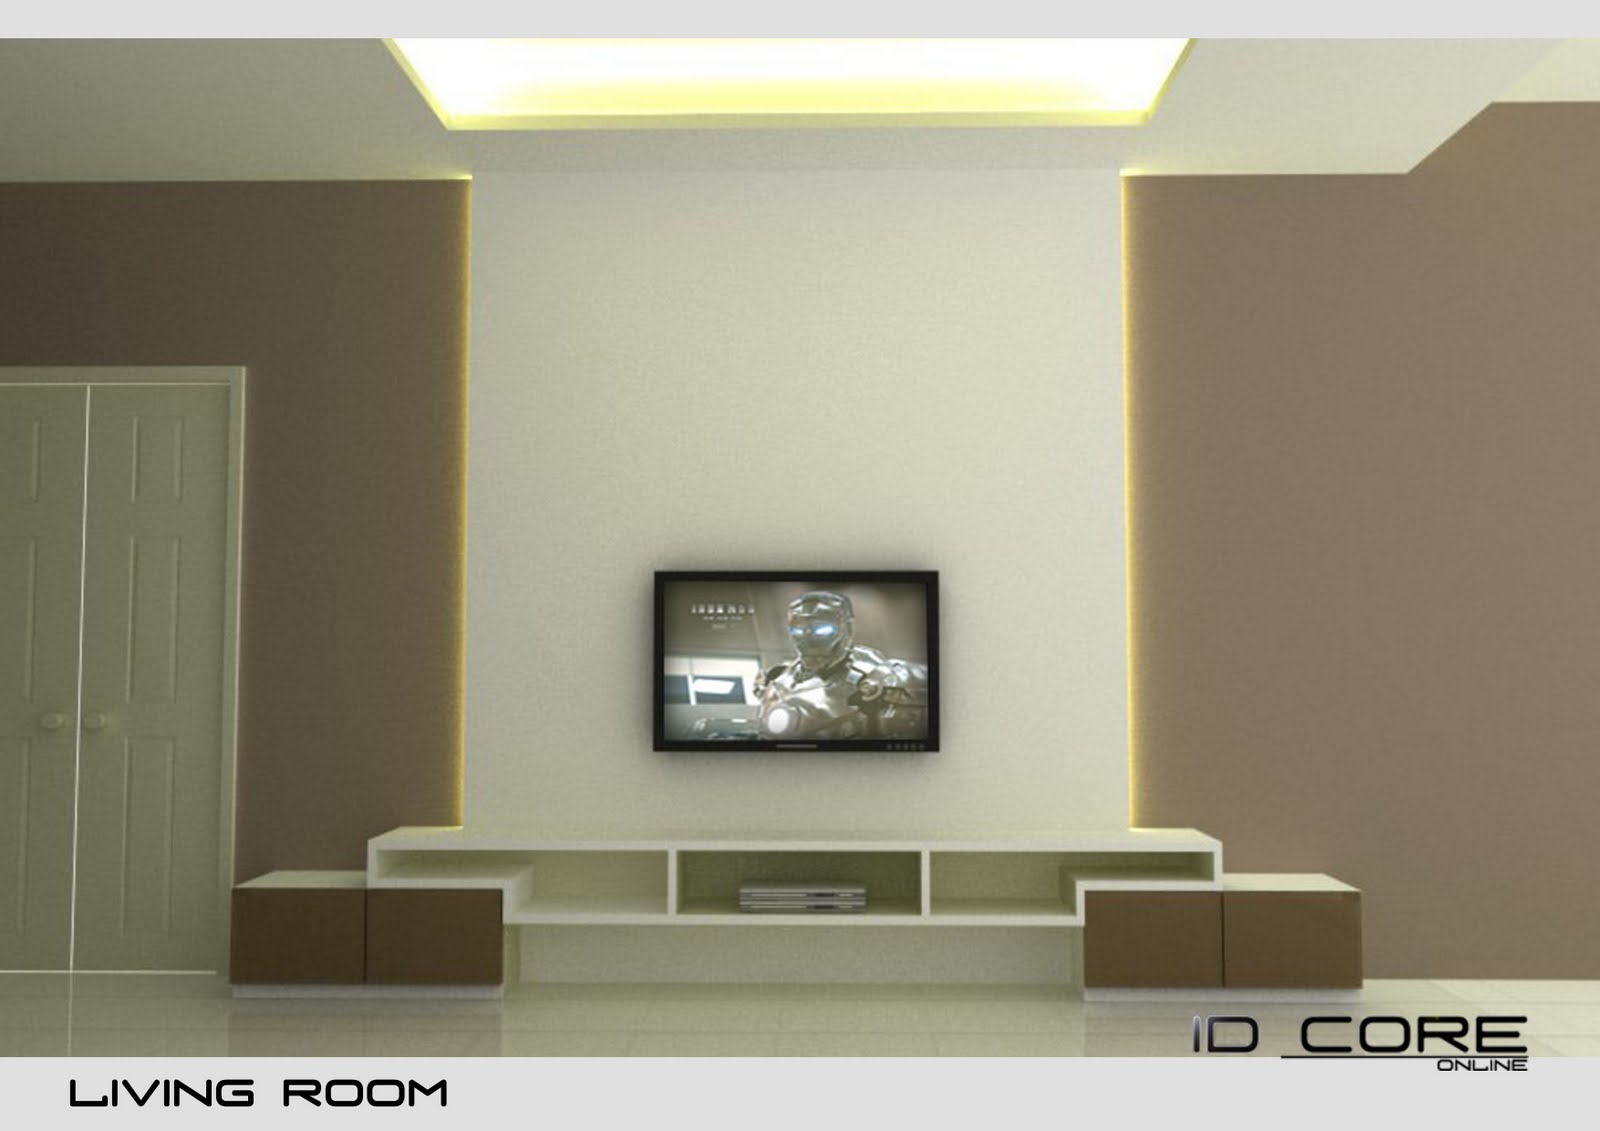 living room tv cabinet design living room interior designs. Black Bedroom Furniture Sets. Home Design Ideas